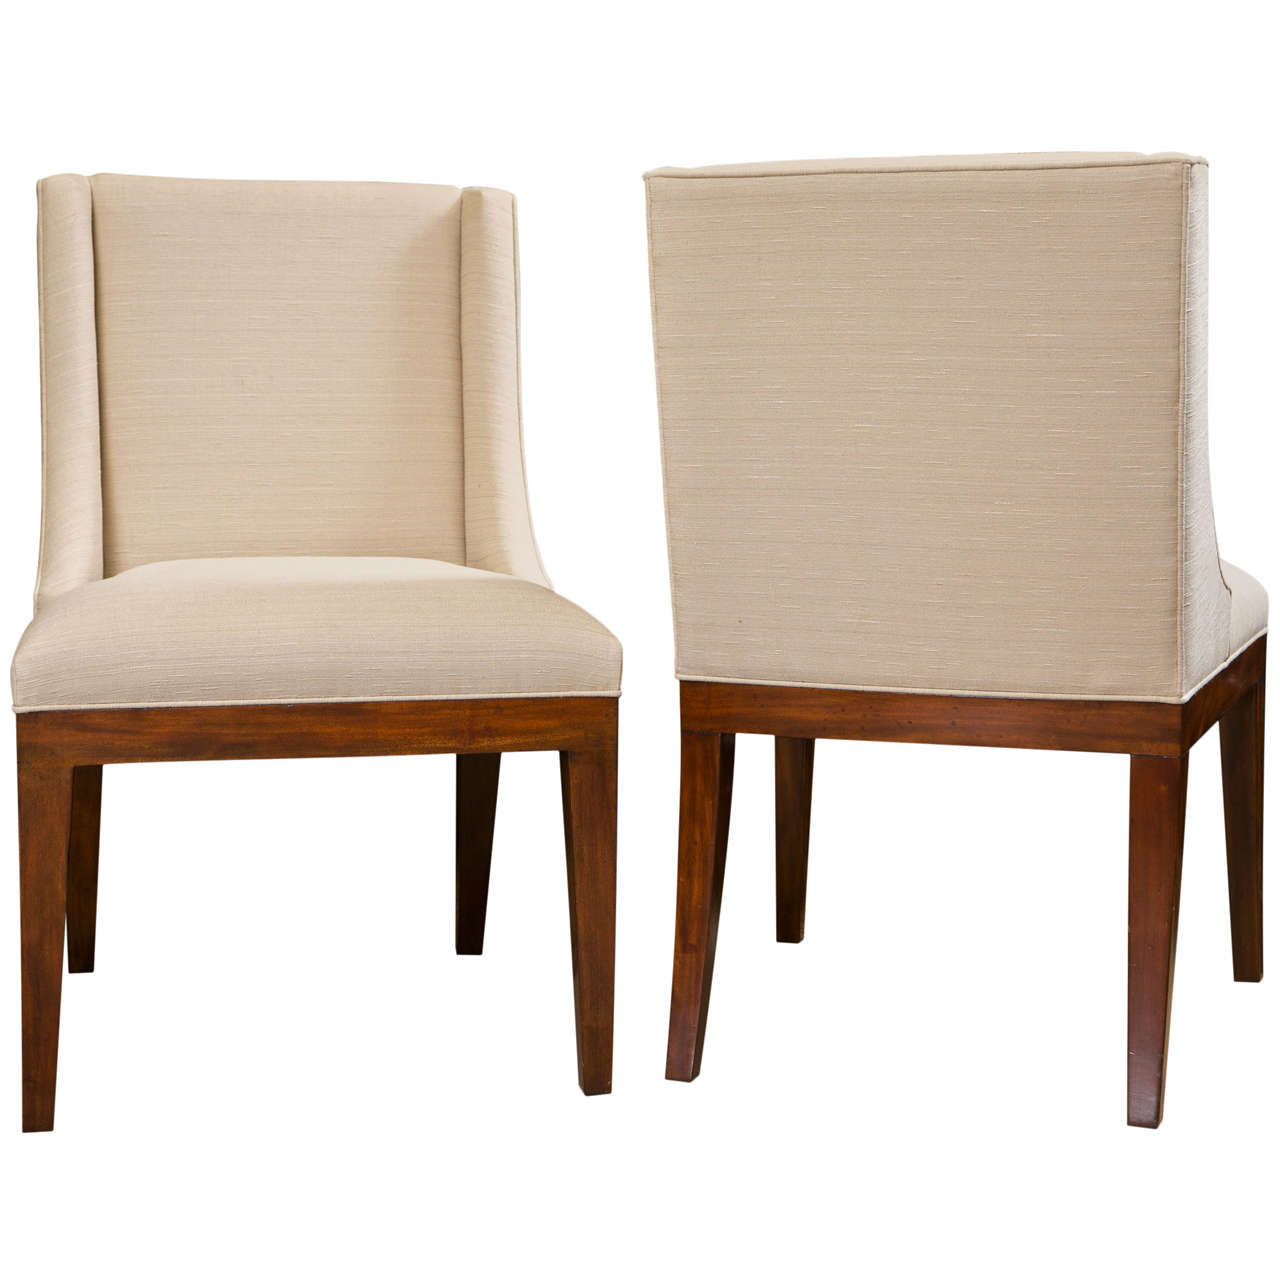 dining chairs set of 4 target stainless steel designs 6 classic modern upholstered at 1stdibs